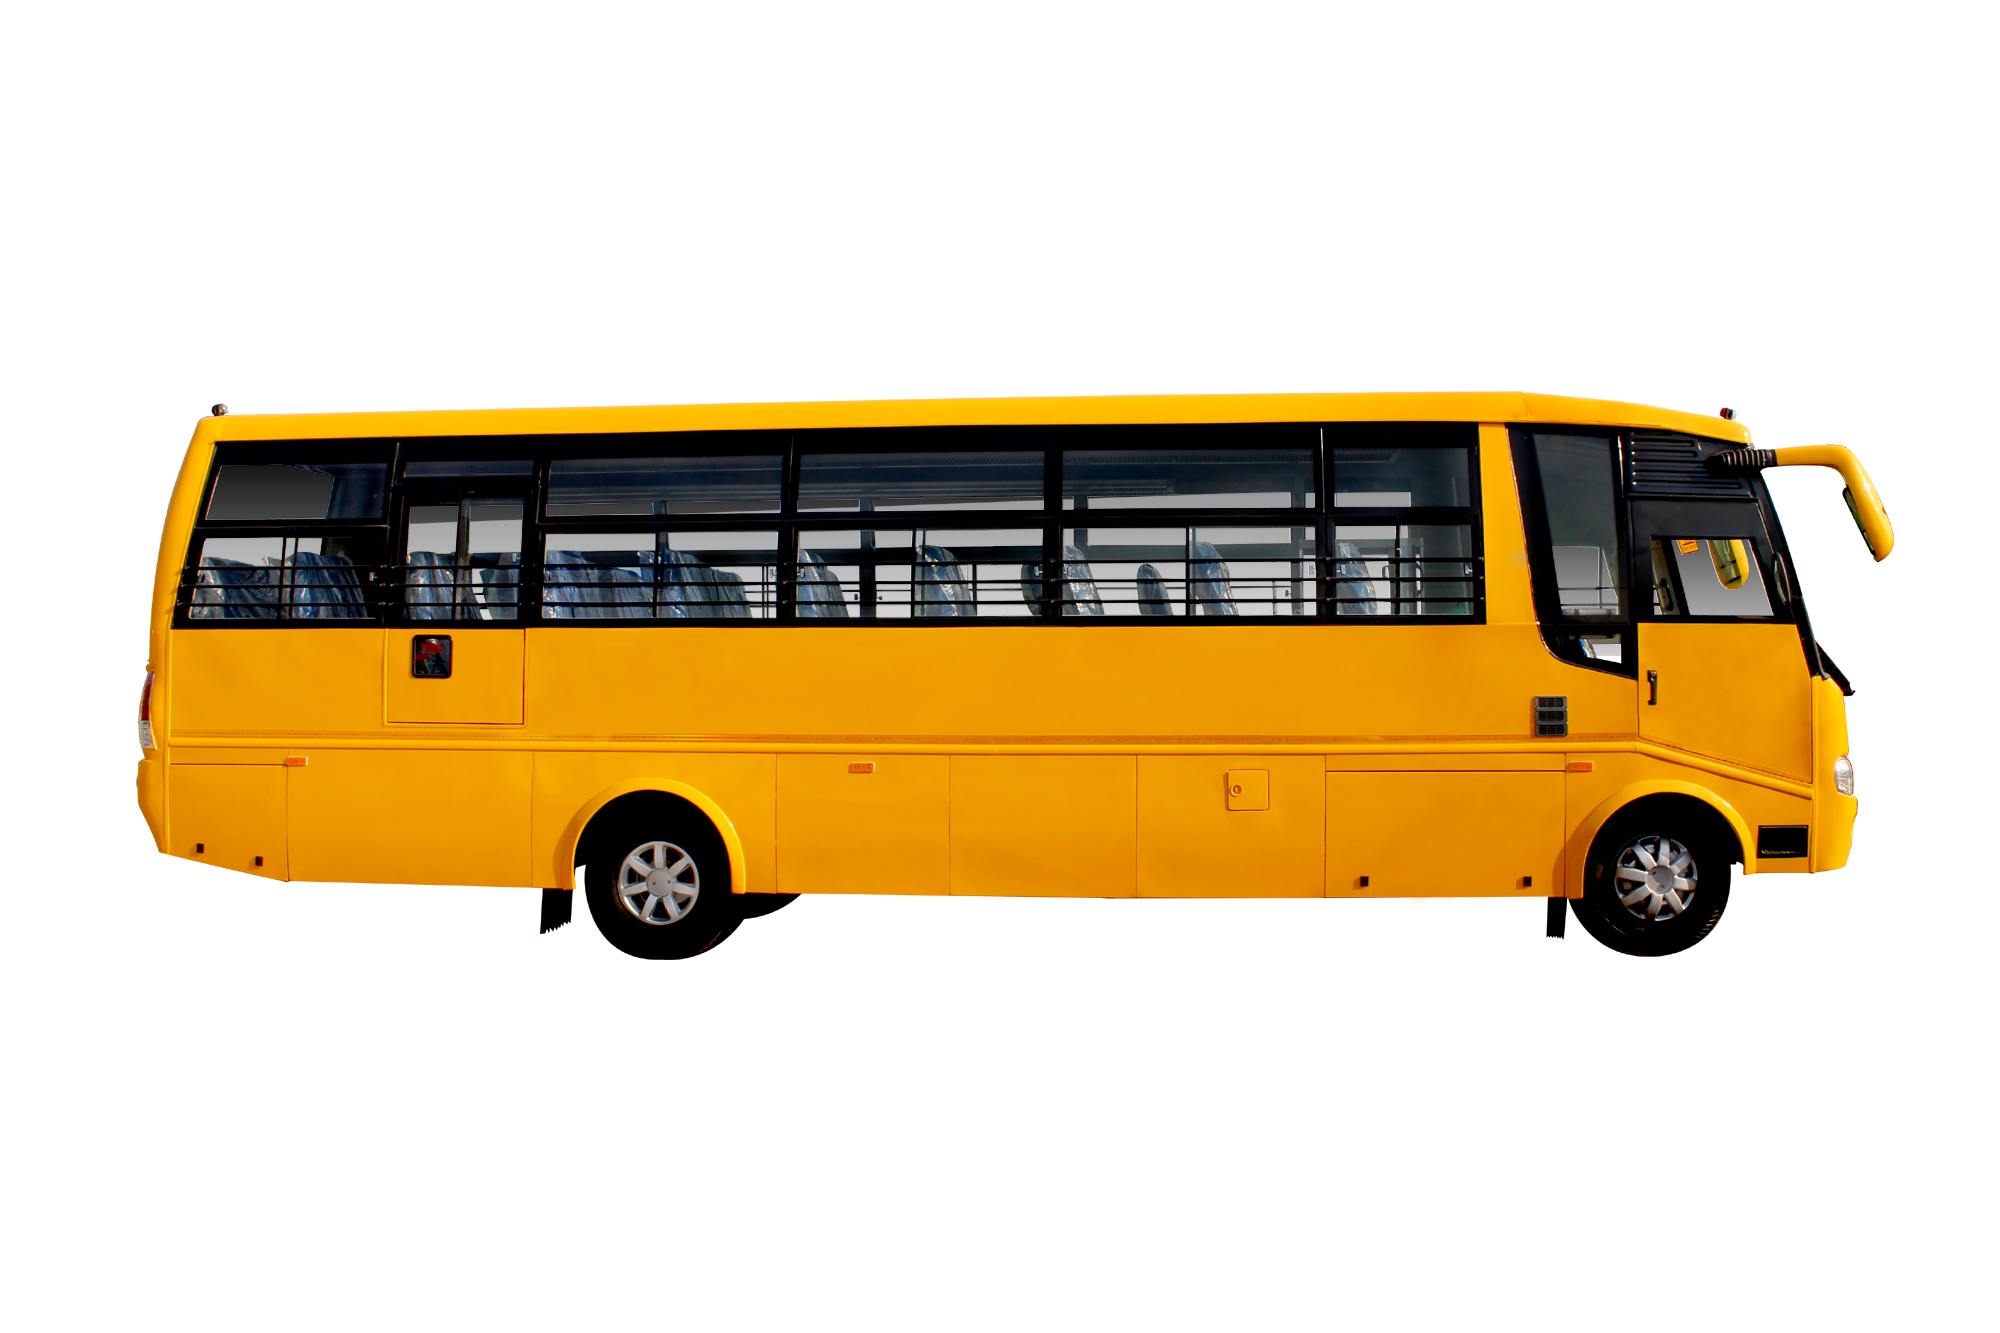 vector black and white download Collection of free bussed. Vector bus sbs